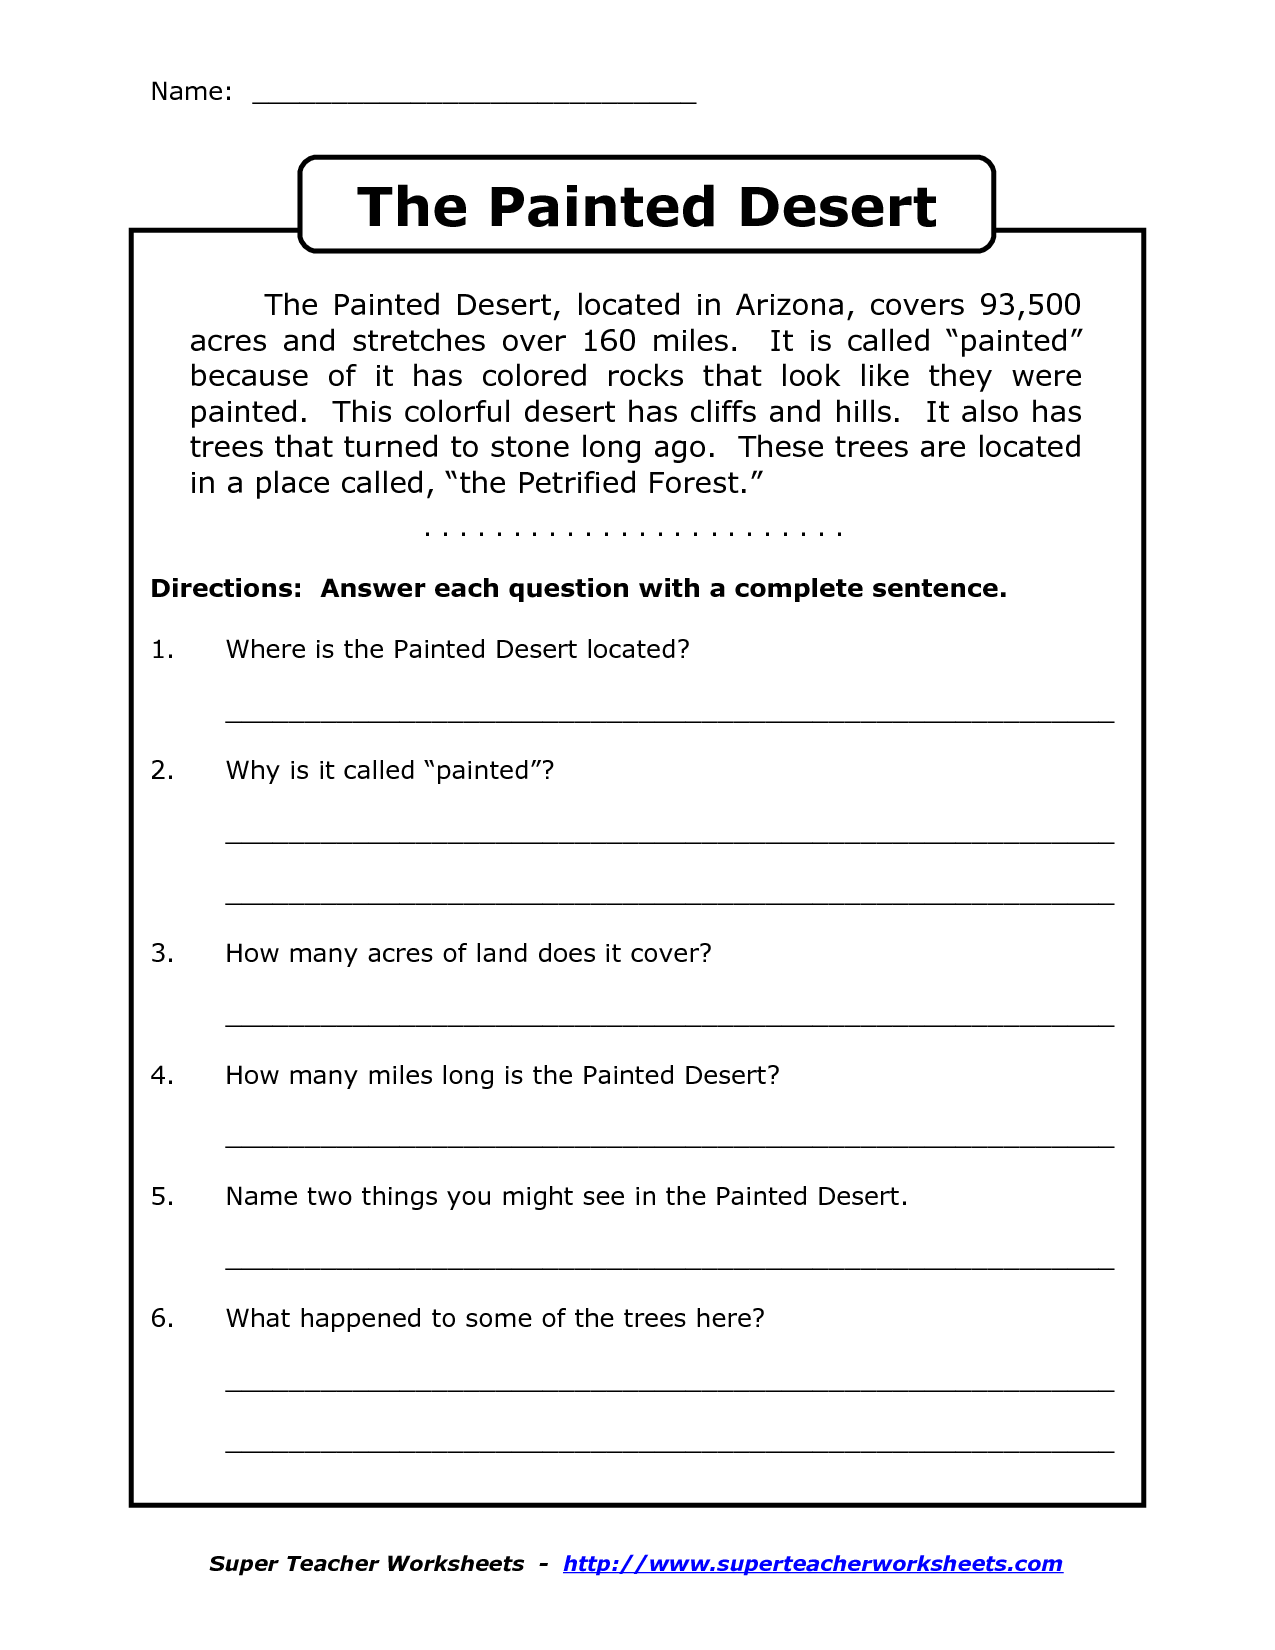 enrichment language worksheets - Google Search | enrichment ...